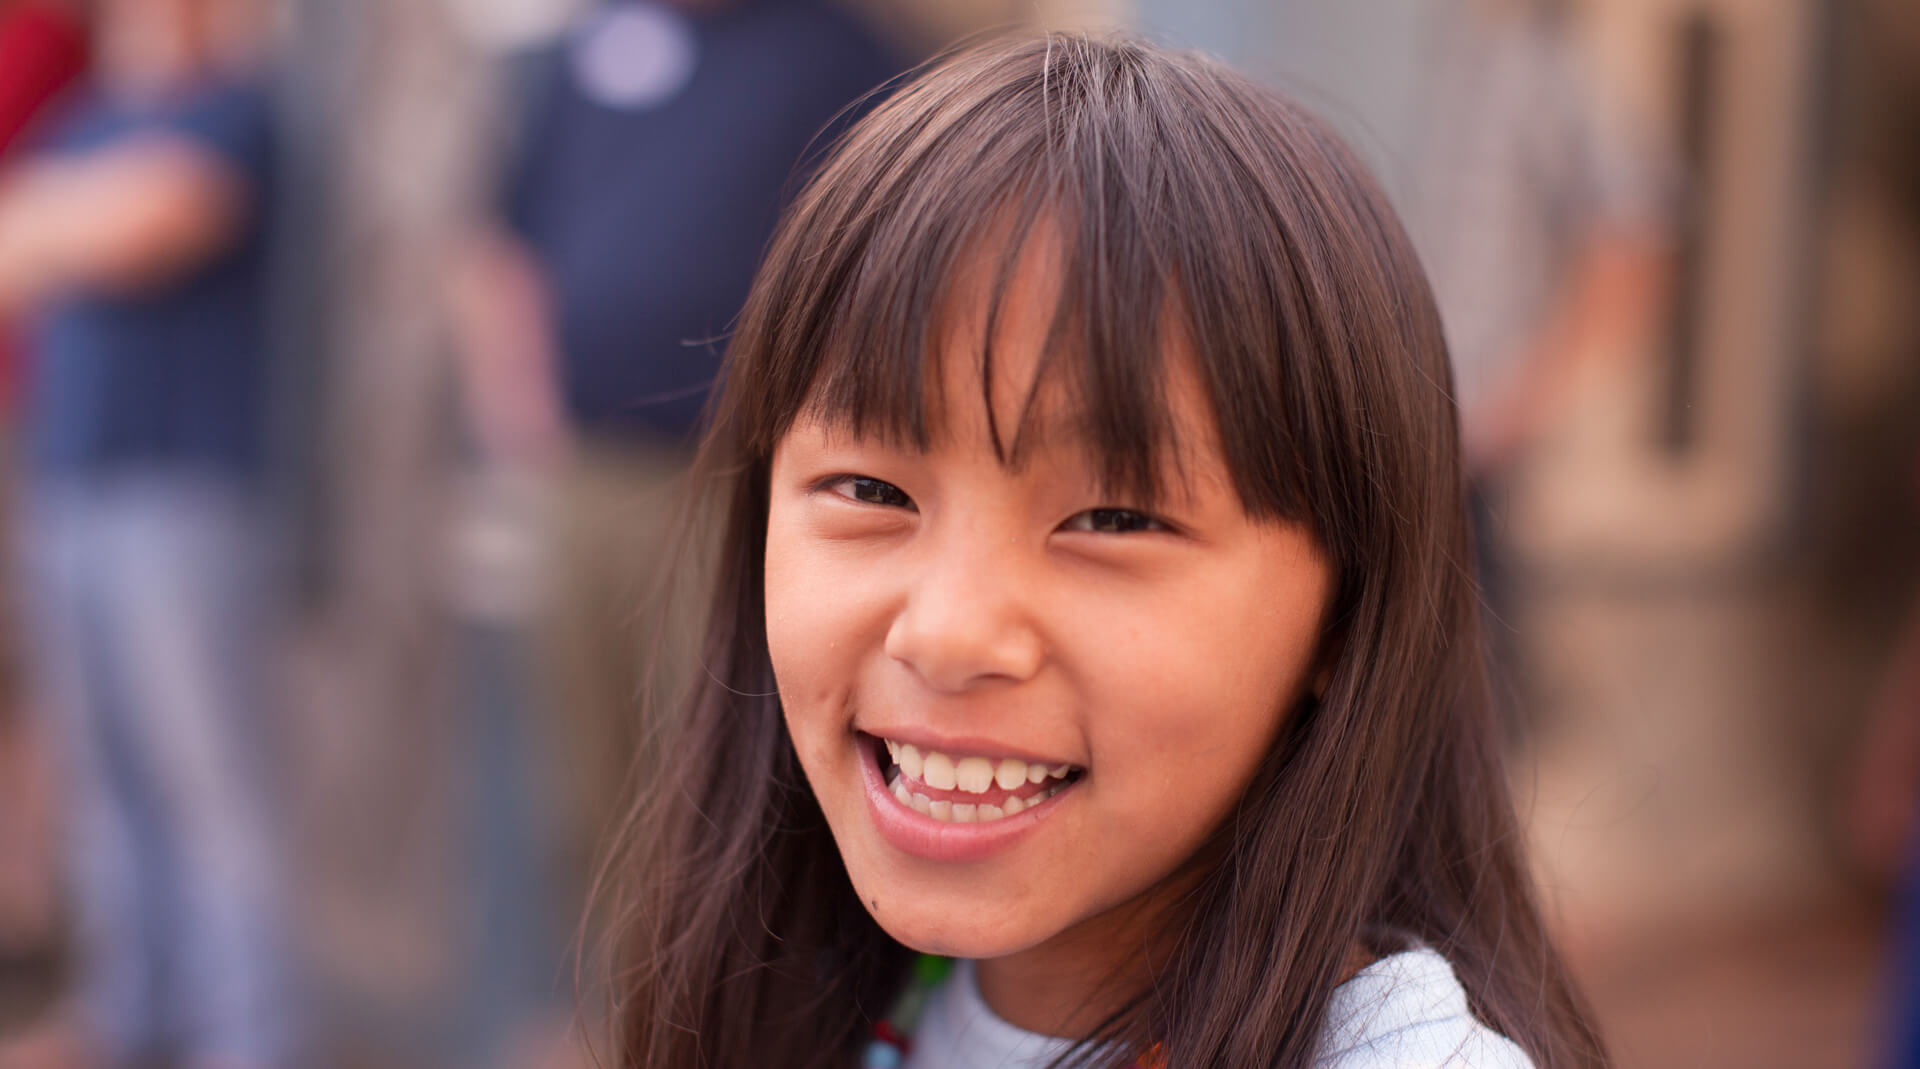 one_girl_hero.jpg